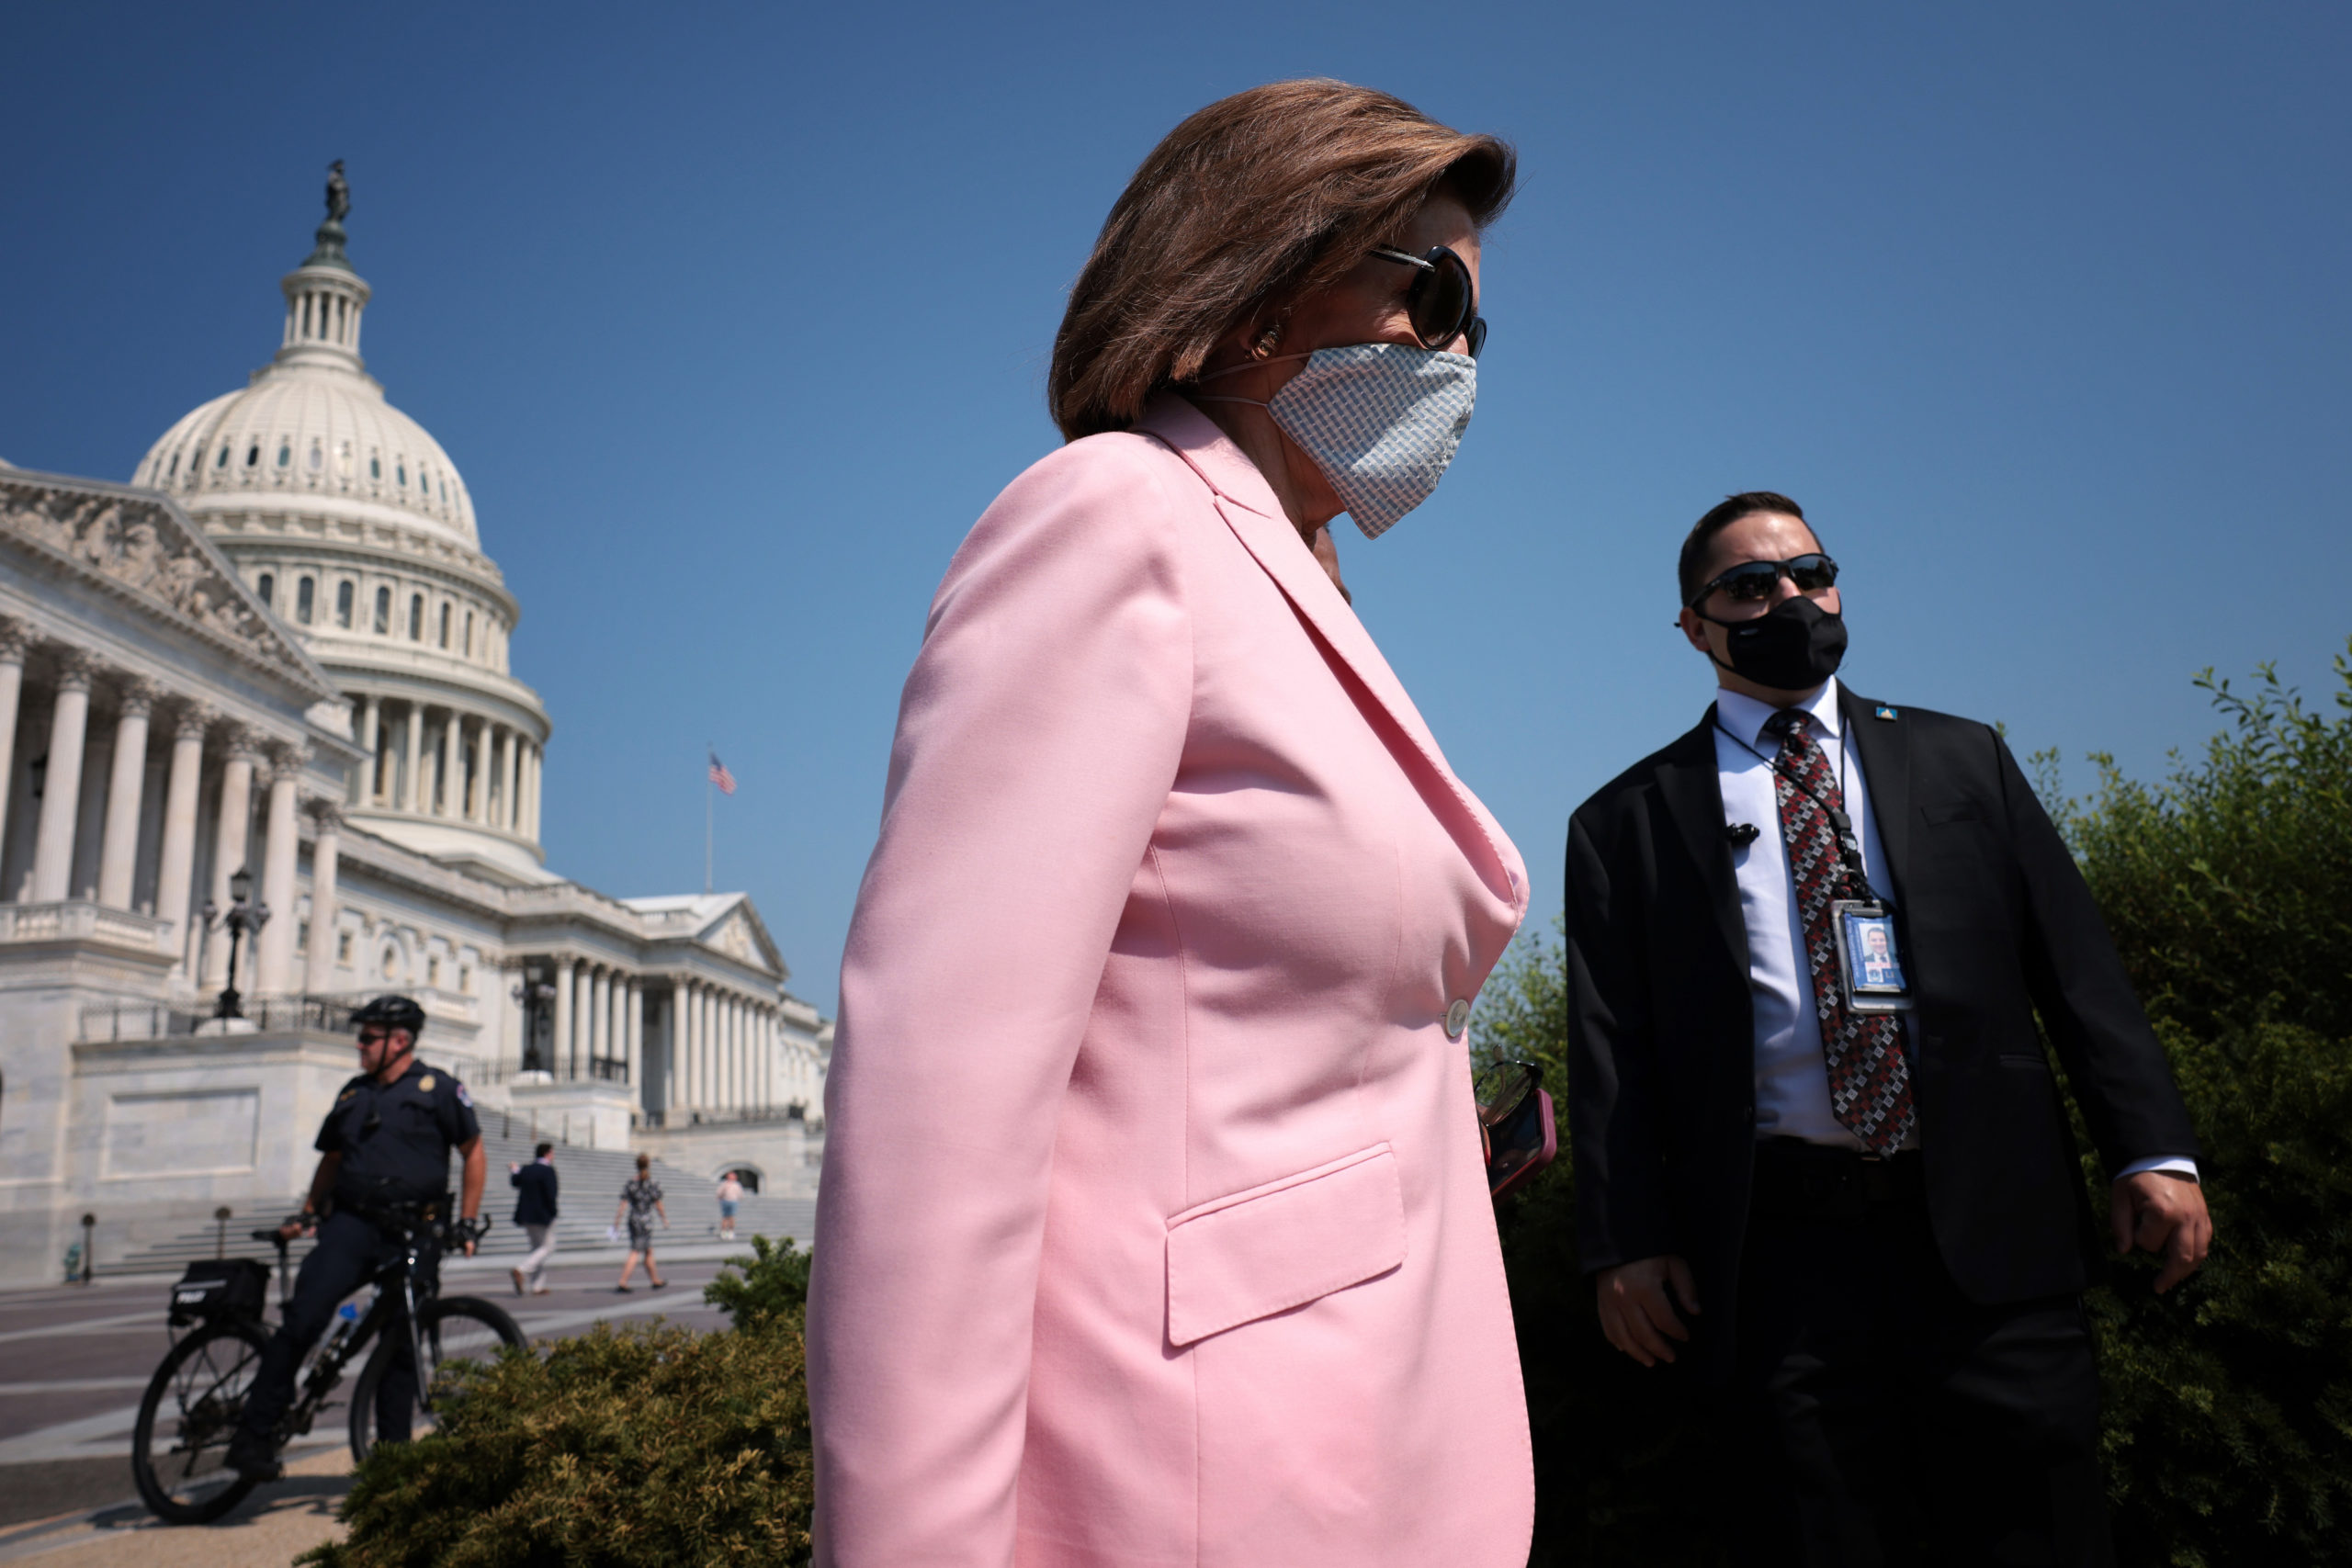 U.S. Speaker of the House Nancy Pelosi (D-CA) arrives for a press conference with members of the Poor People's Campaign outside the U.S. Capitol August 25, 2021 in Washington, DC. (Photo by Win McNamee/Getty Images)